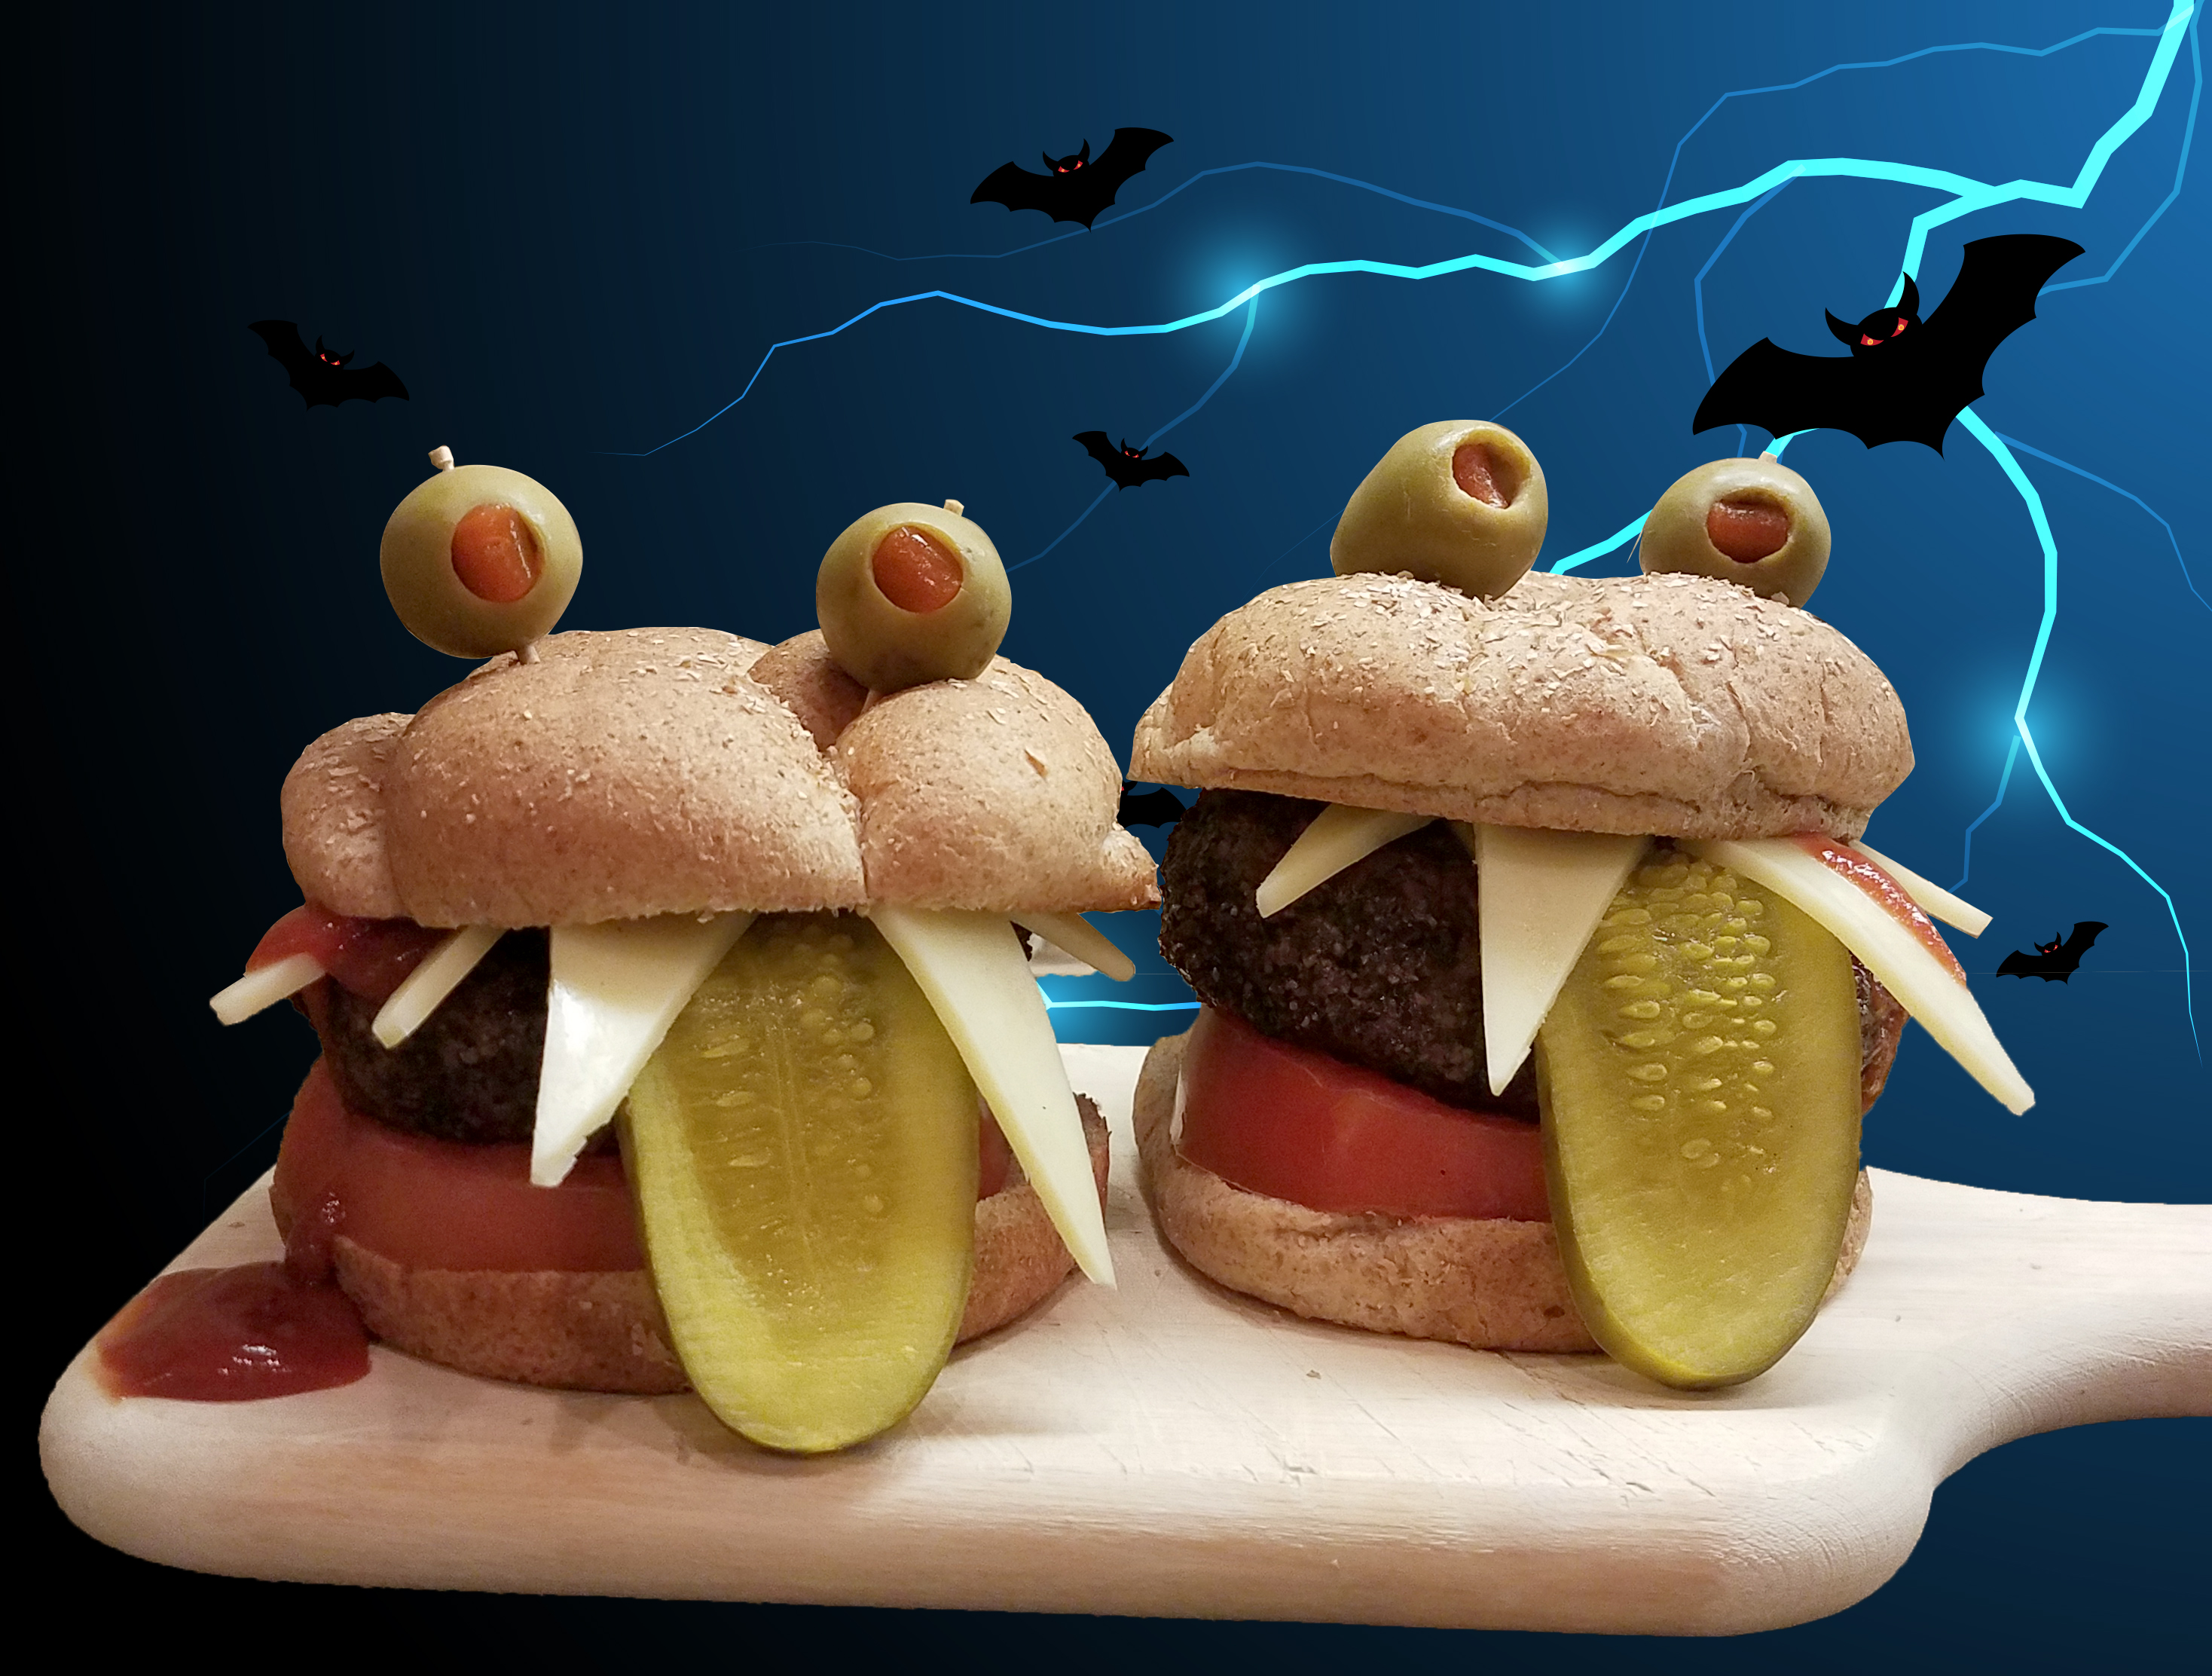 Happy Halloween – Fun with Food!